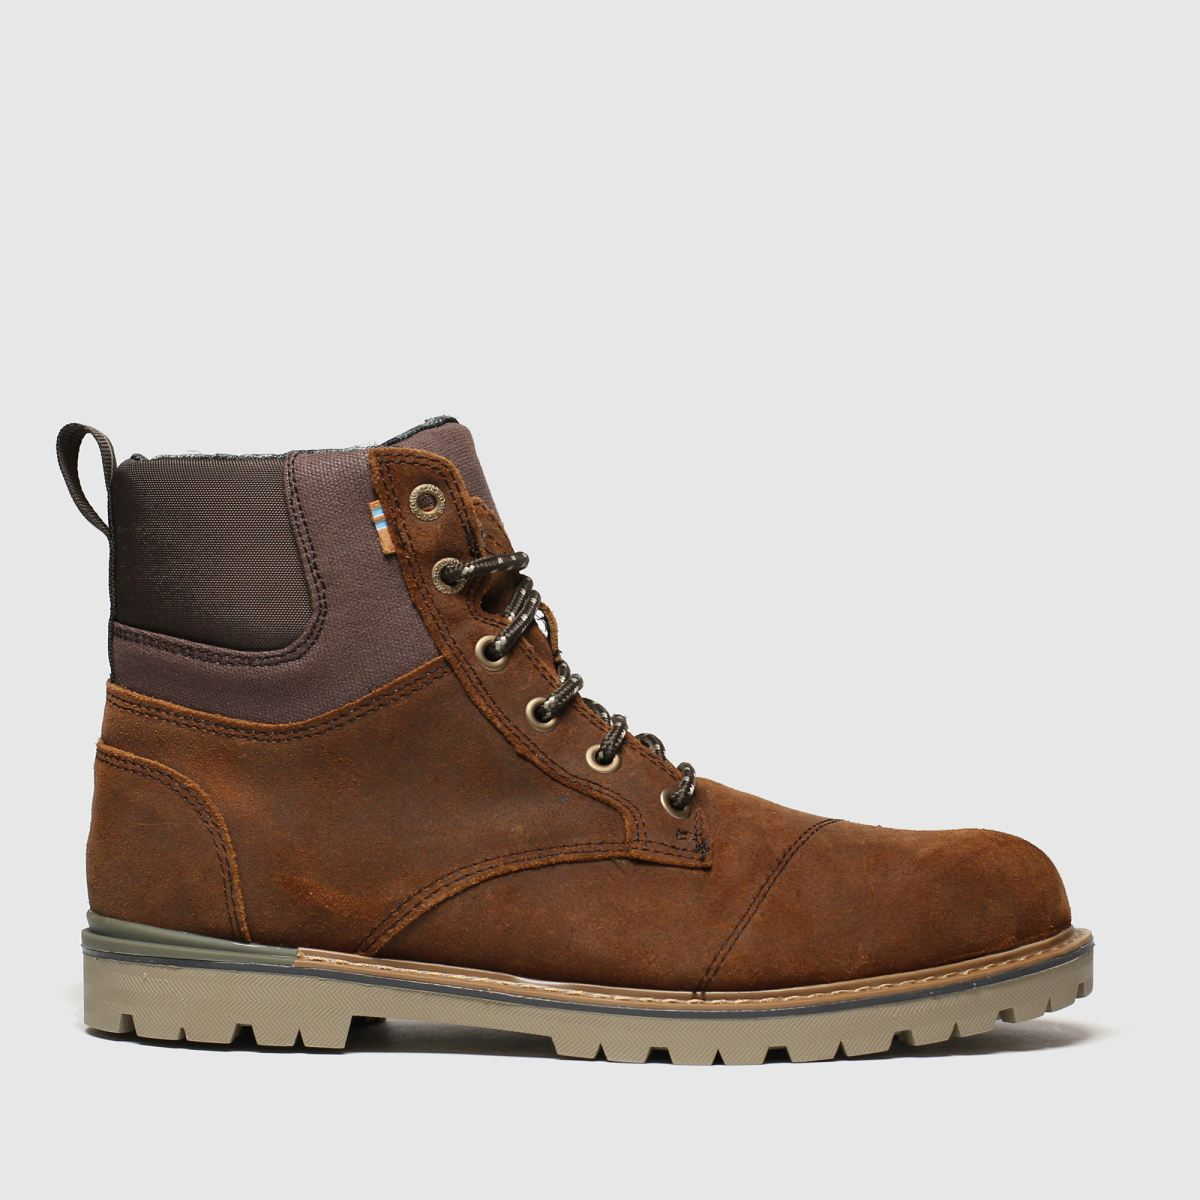 Toms Brown Ashland Boots